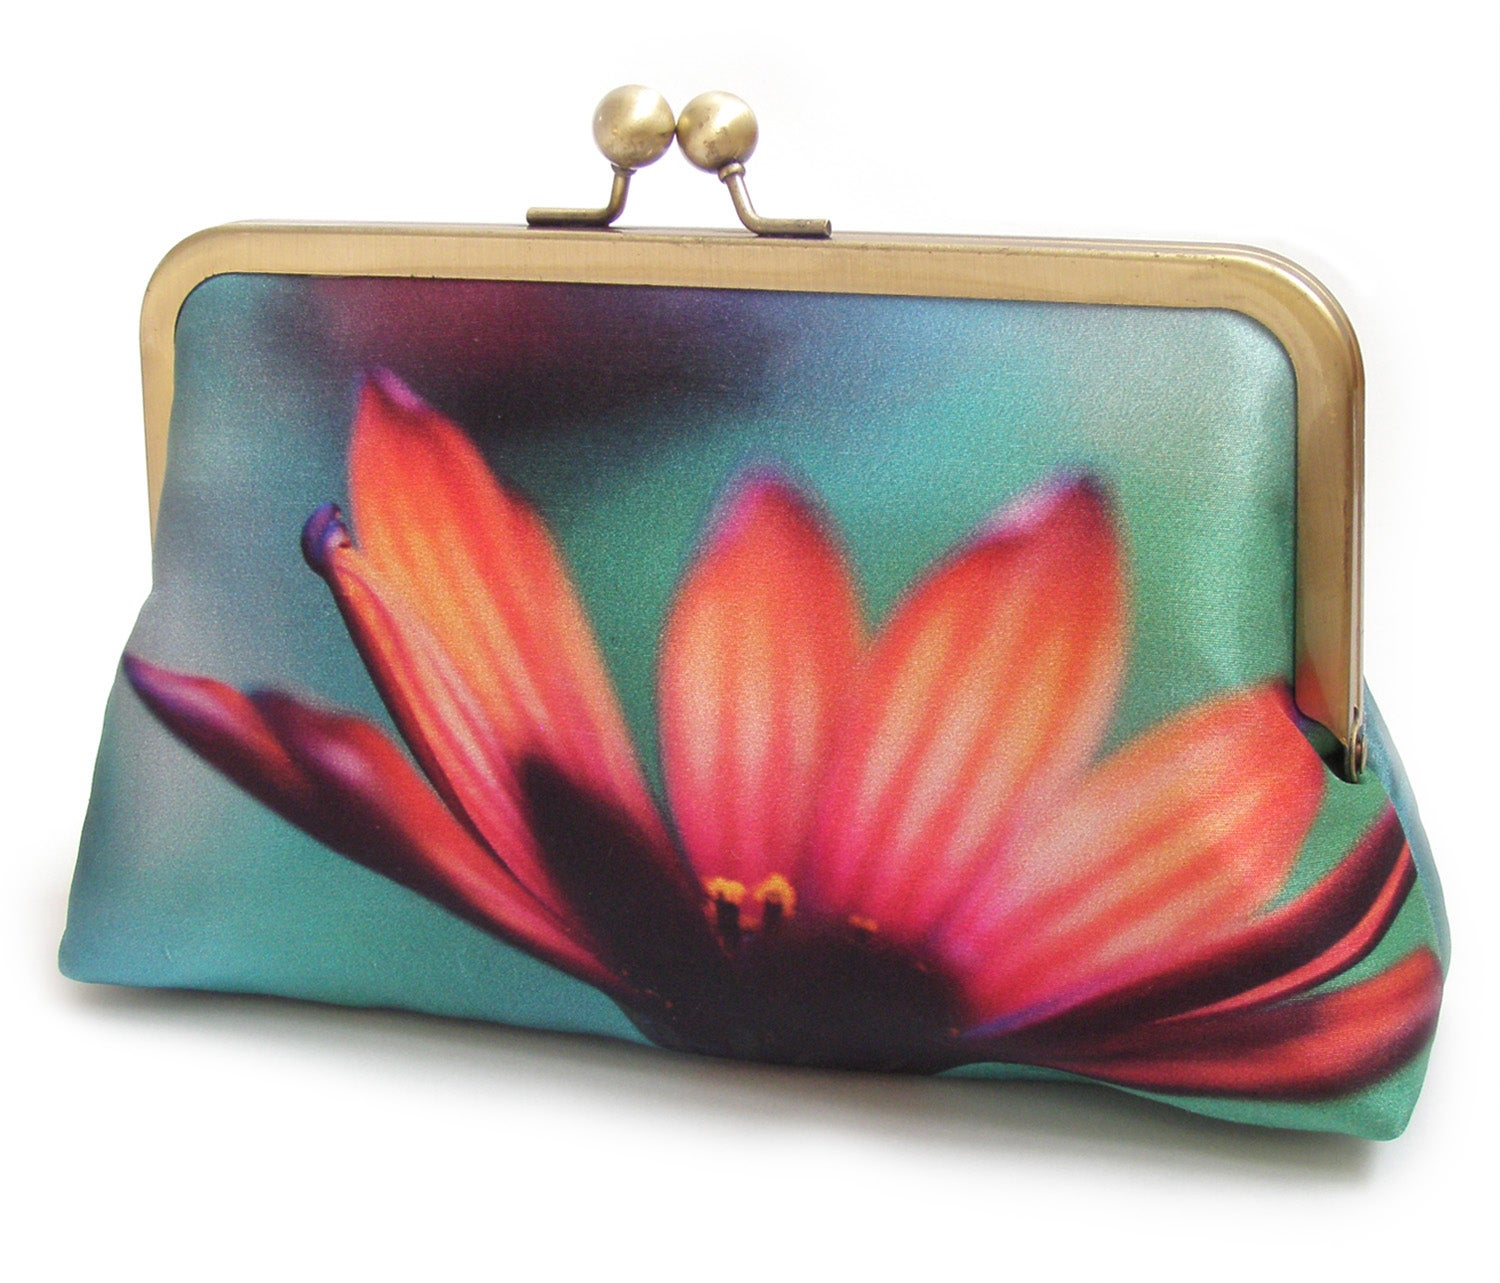 Image of African Daisy silk clutch bag, pink and orange flower purse